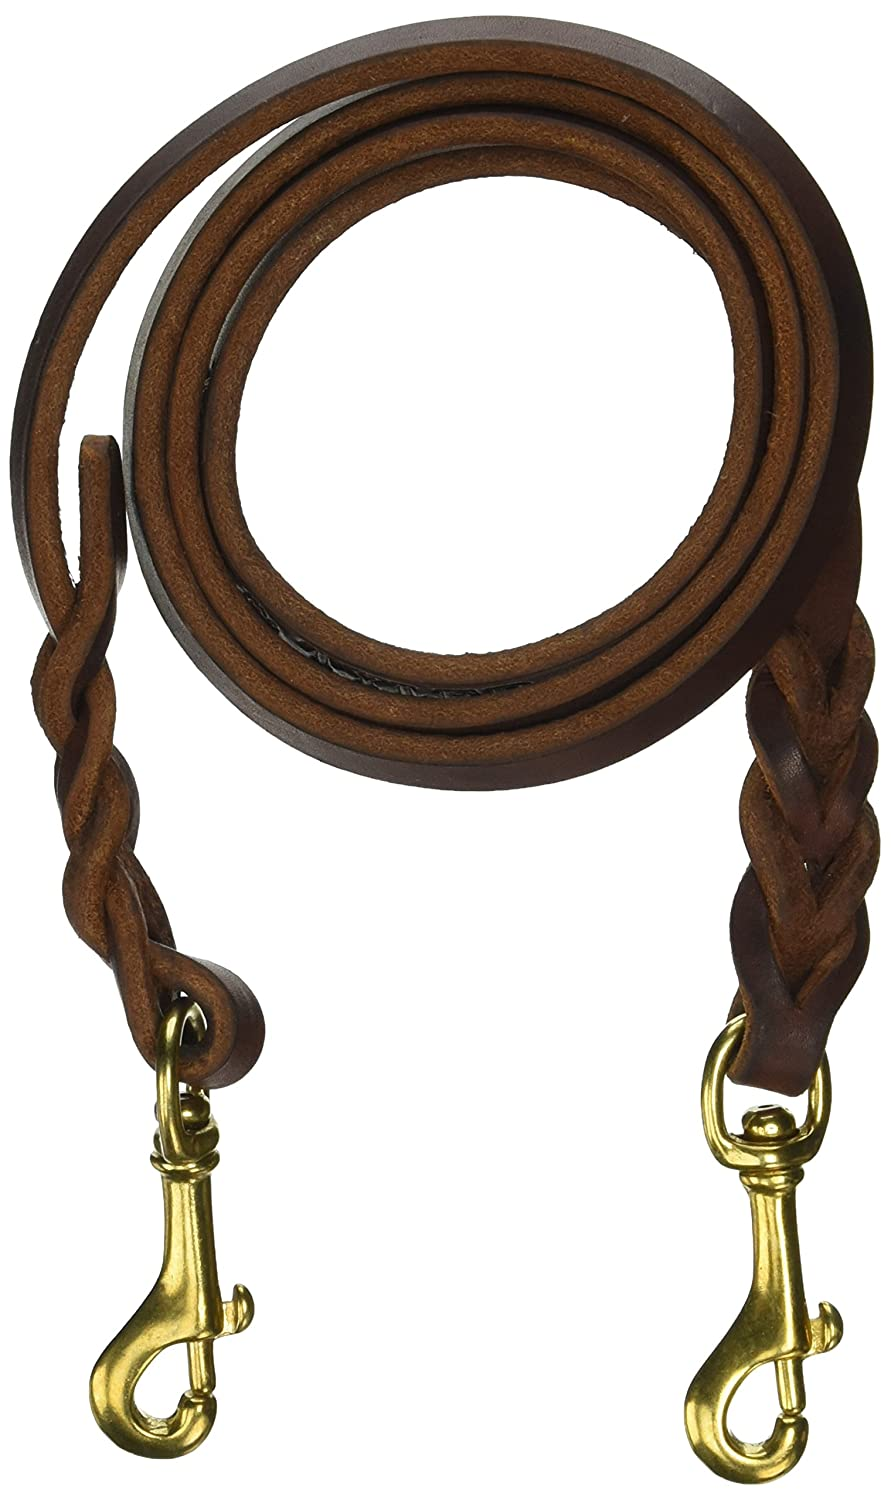 Dean and Tyler Double Snap Braided Dog Leash, Brown 5-Feet by 1 2-Inch with Solid Brass Snaps.